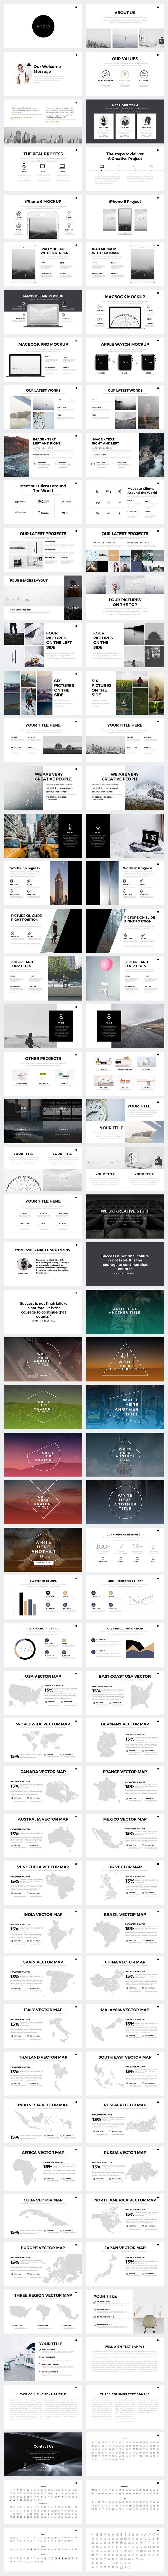 Nova Minimal PowerPoint Template by Slidedizer on @creativemarket